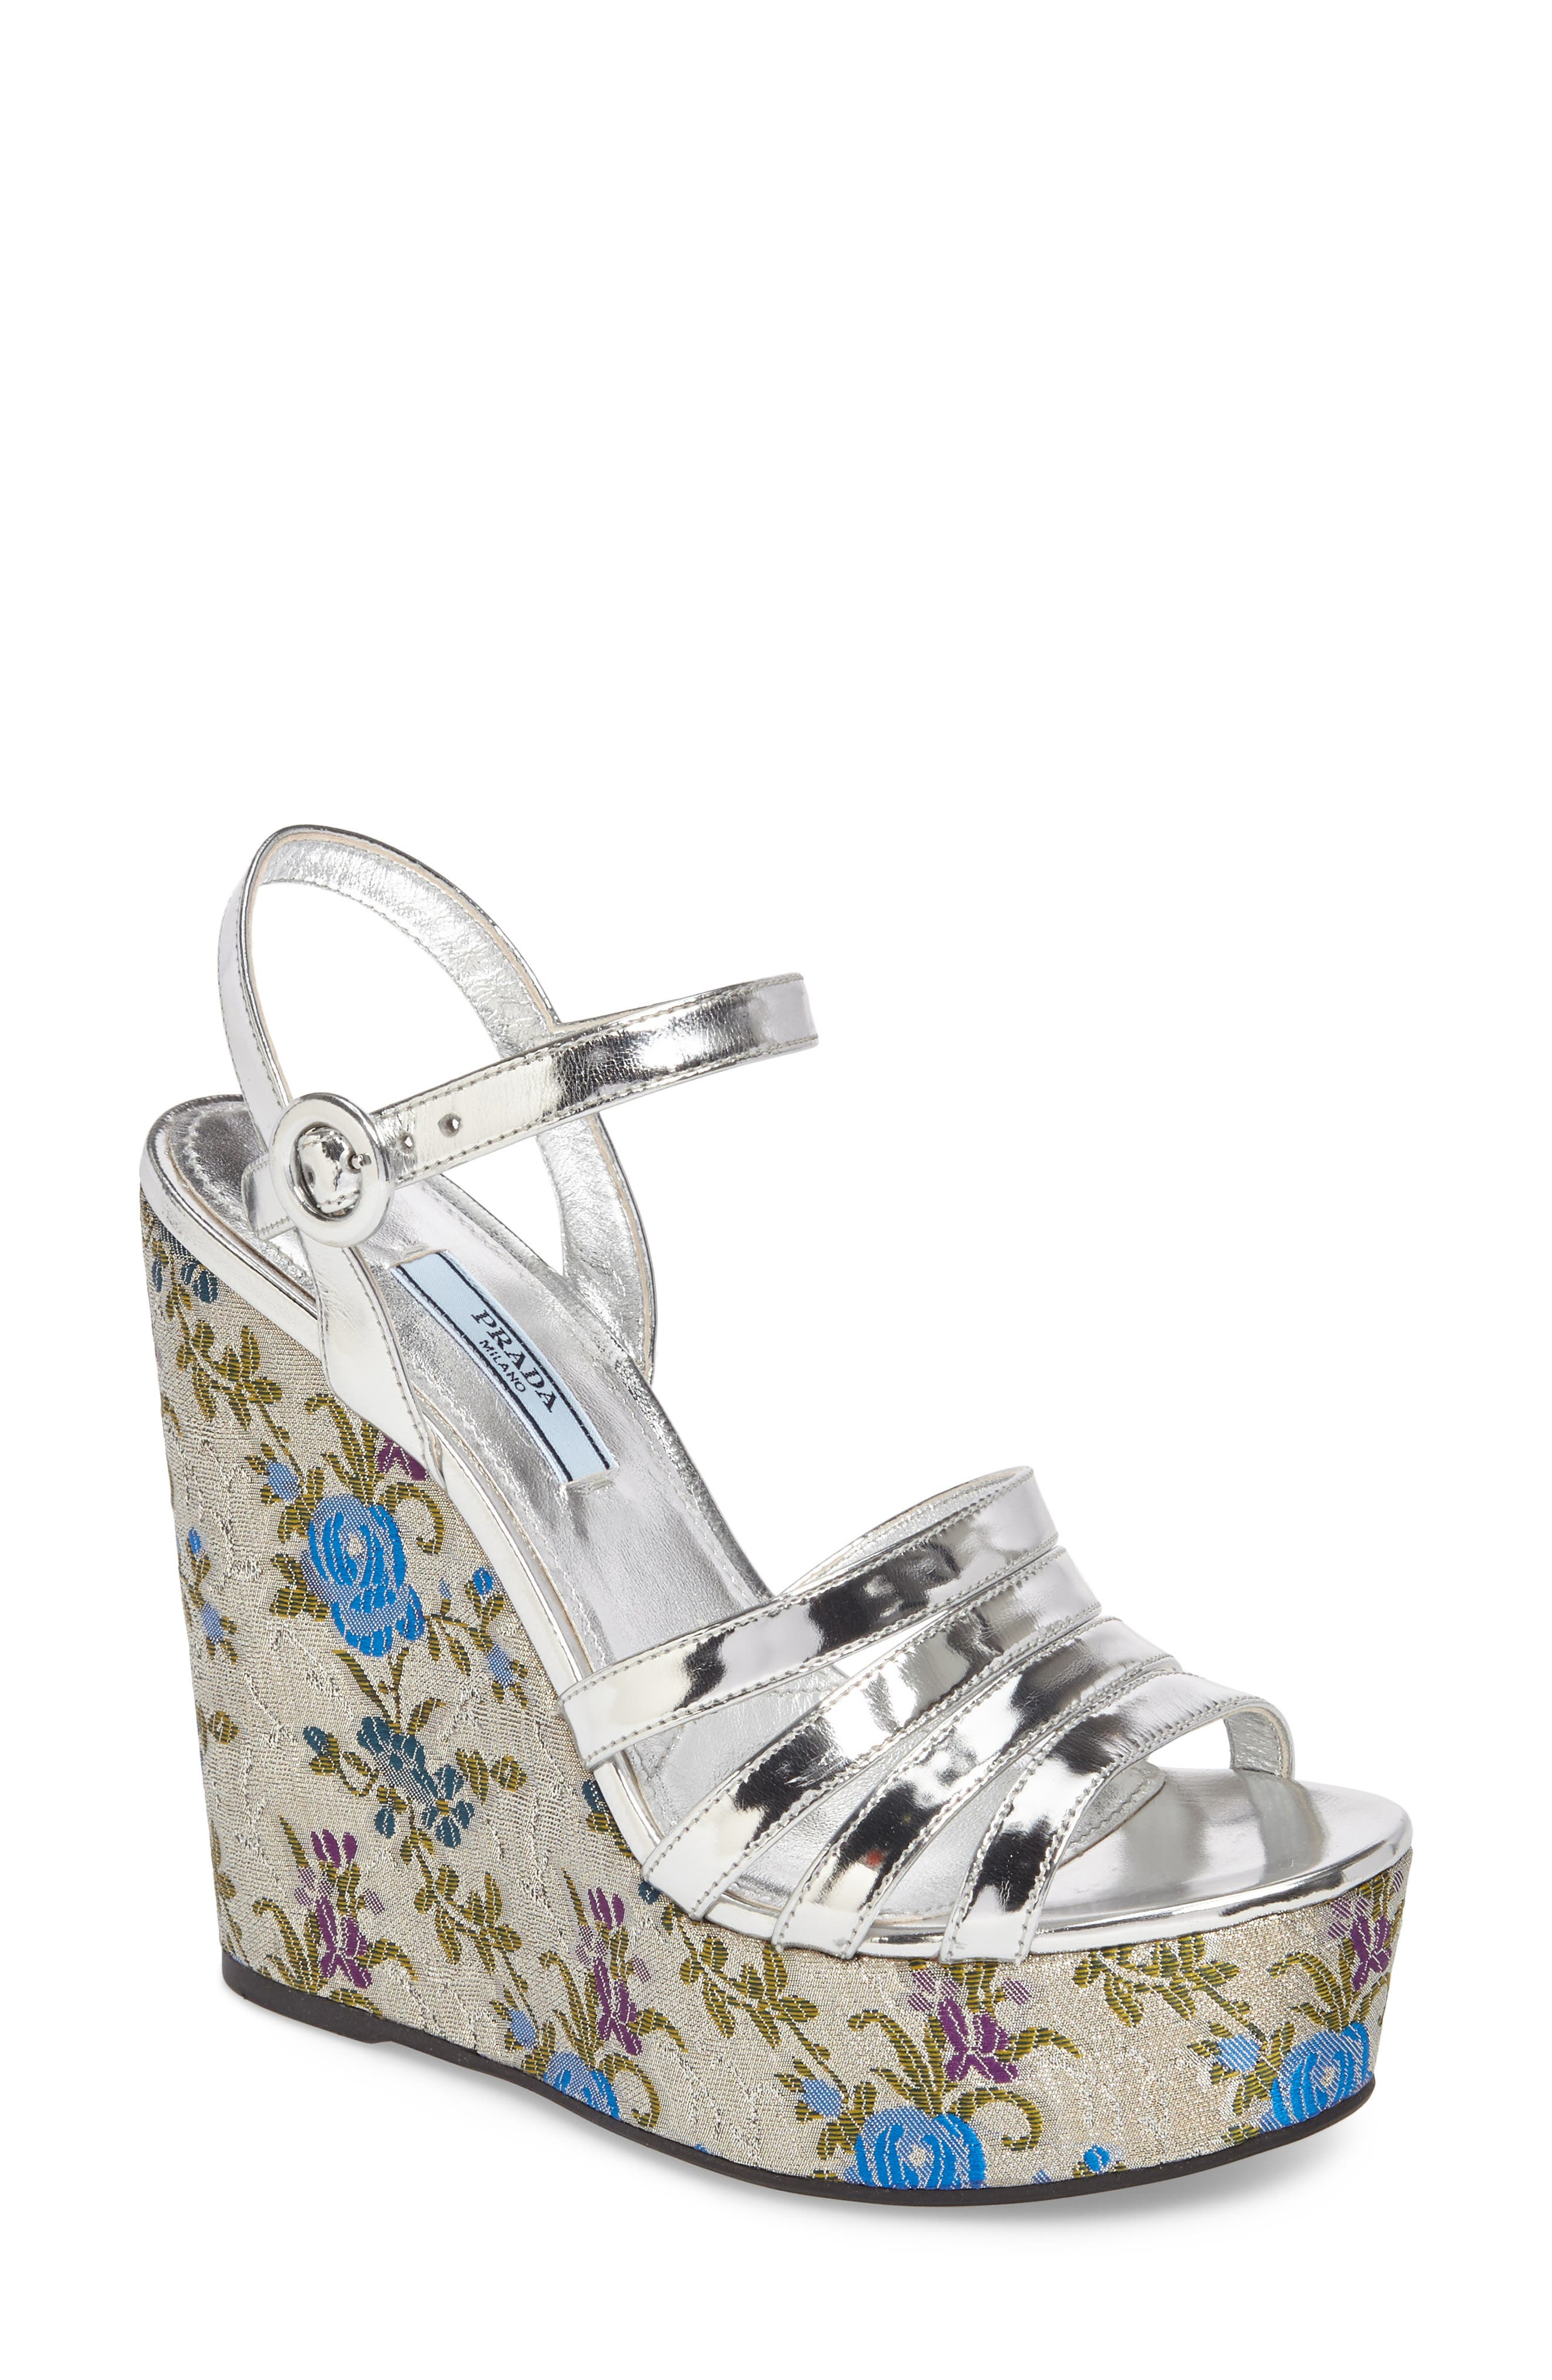 Floral Wedge Platform Sandals,                             Main thumbnail 1, color,                             Silver/ Blue